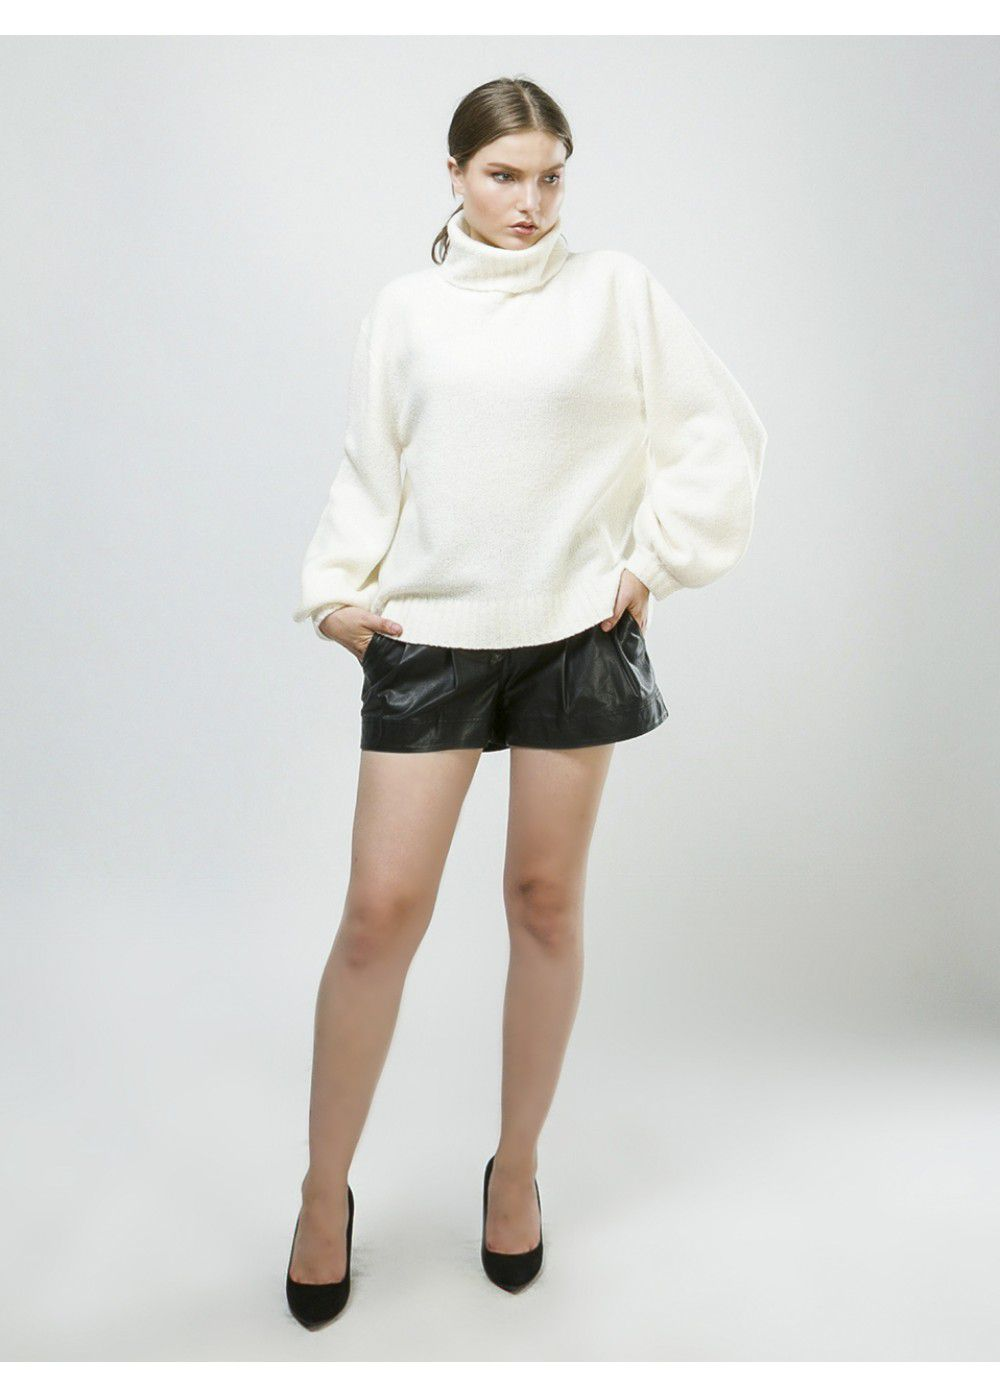 A.L.C. Brinkley Sweater in White